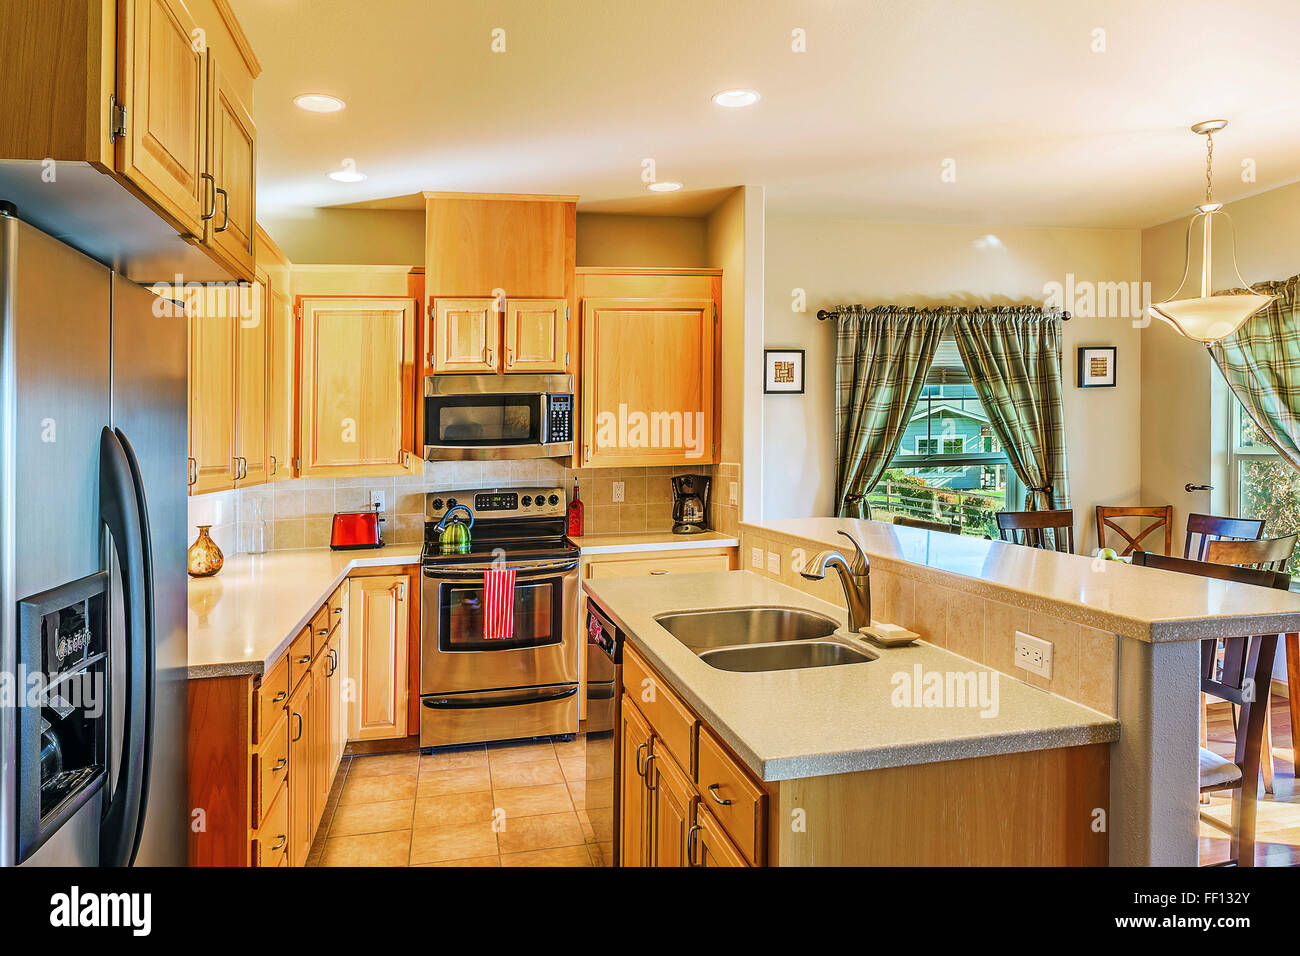 Countertops and cabinets in modern kitchen - Stock Image